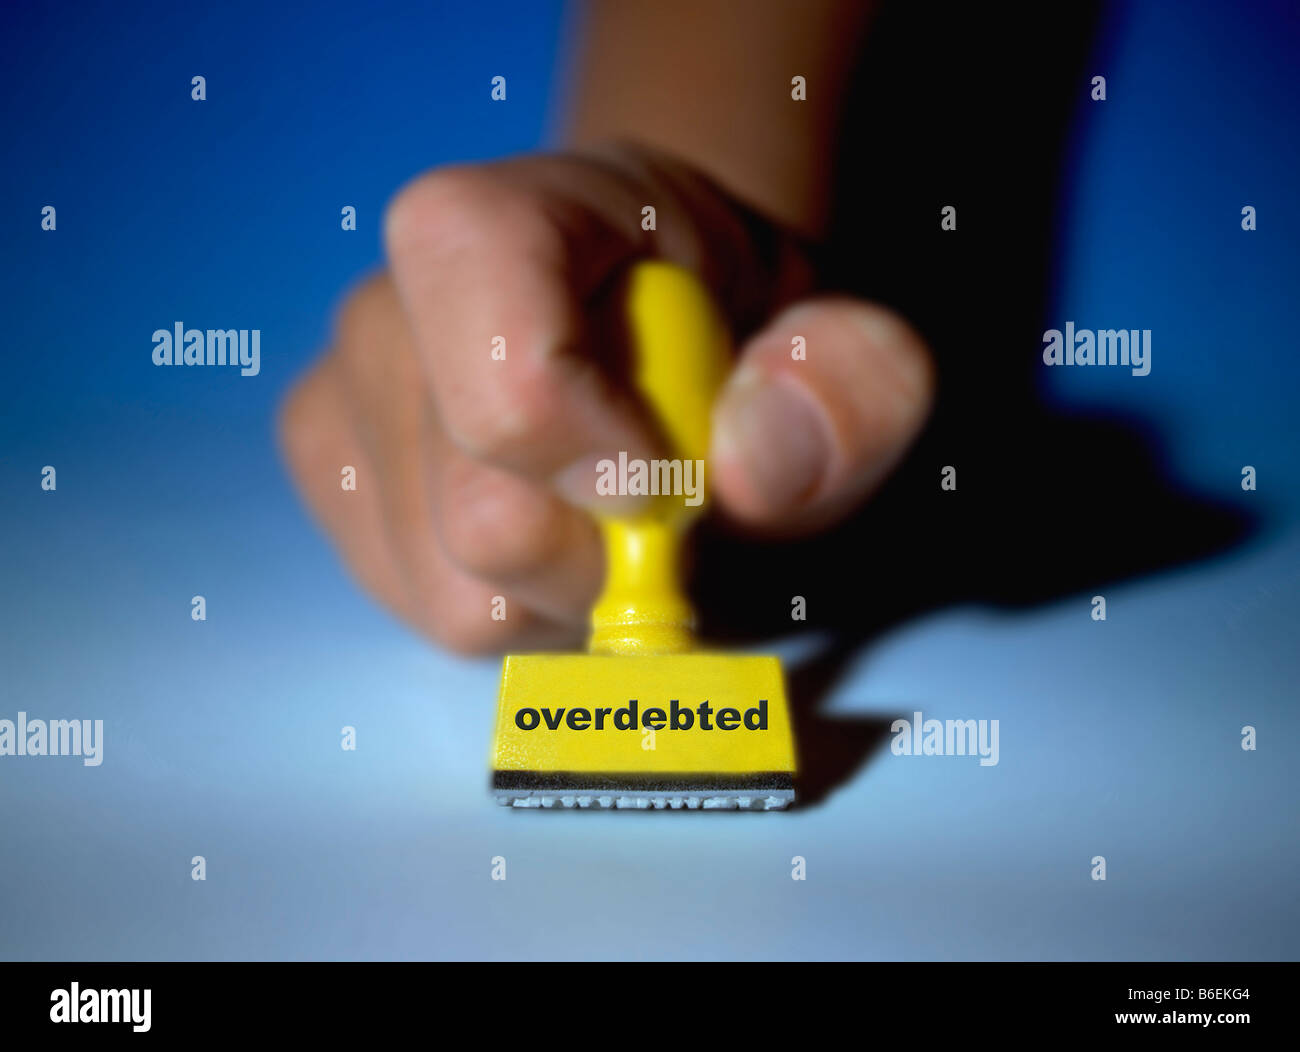 digital enhancement rubber stamp marked overdebted - Stock Image